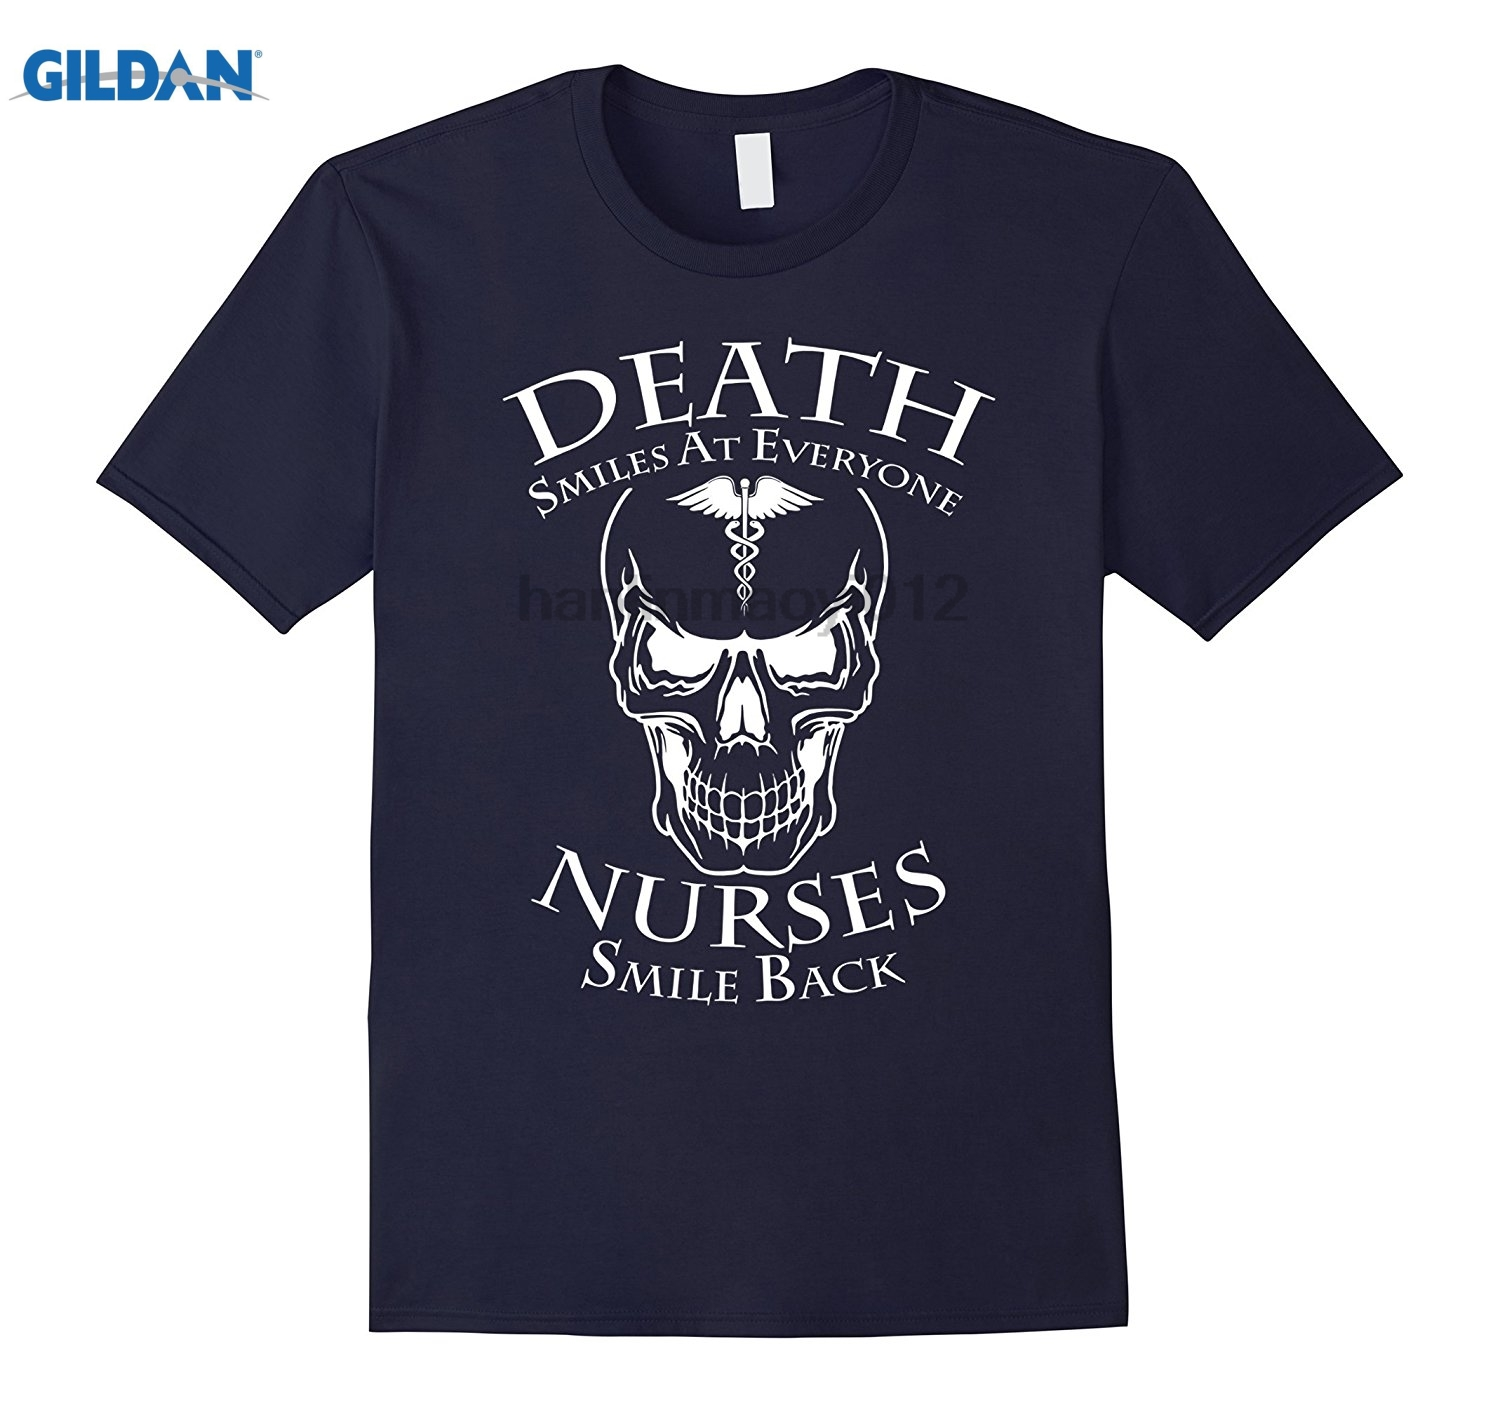 GILDAN Death Smiles At Everyone Nurses Smile Back T-Shirt Womens T-shirt Hot Womens T-sh ...